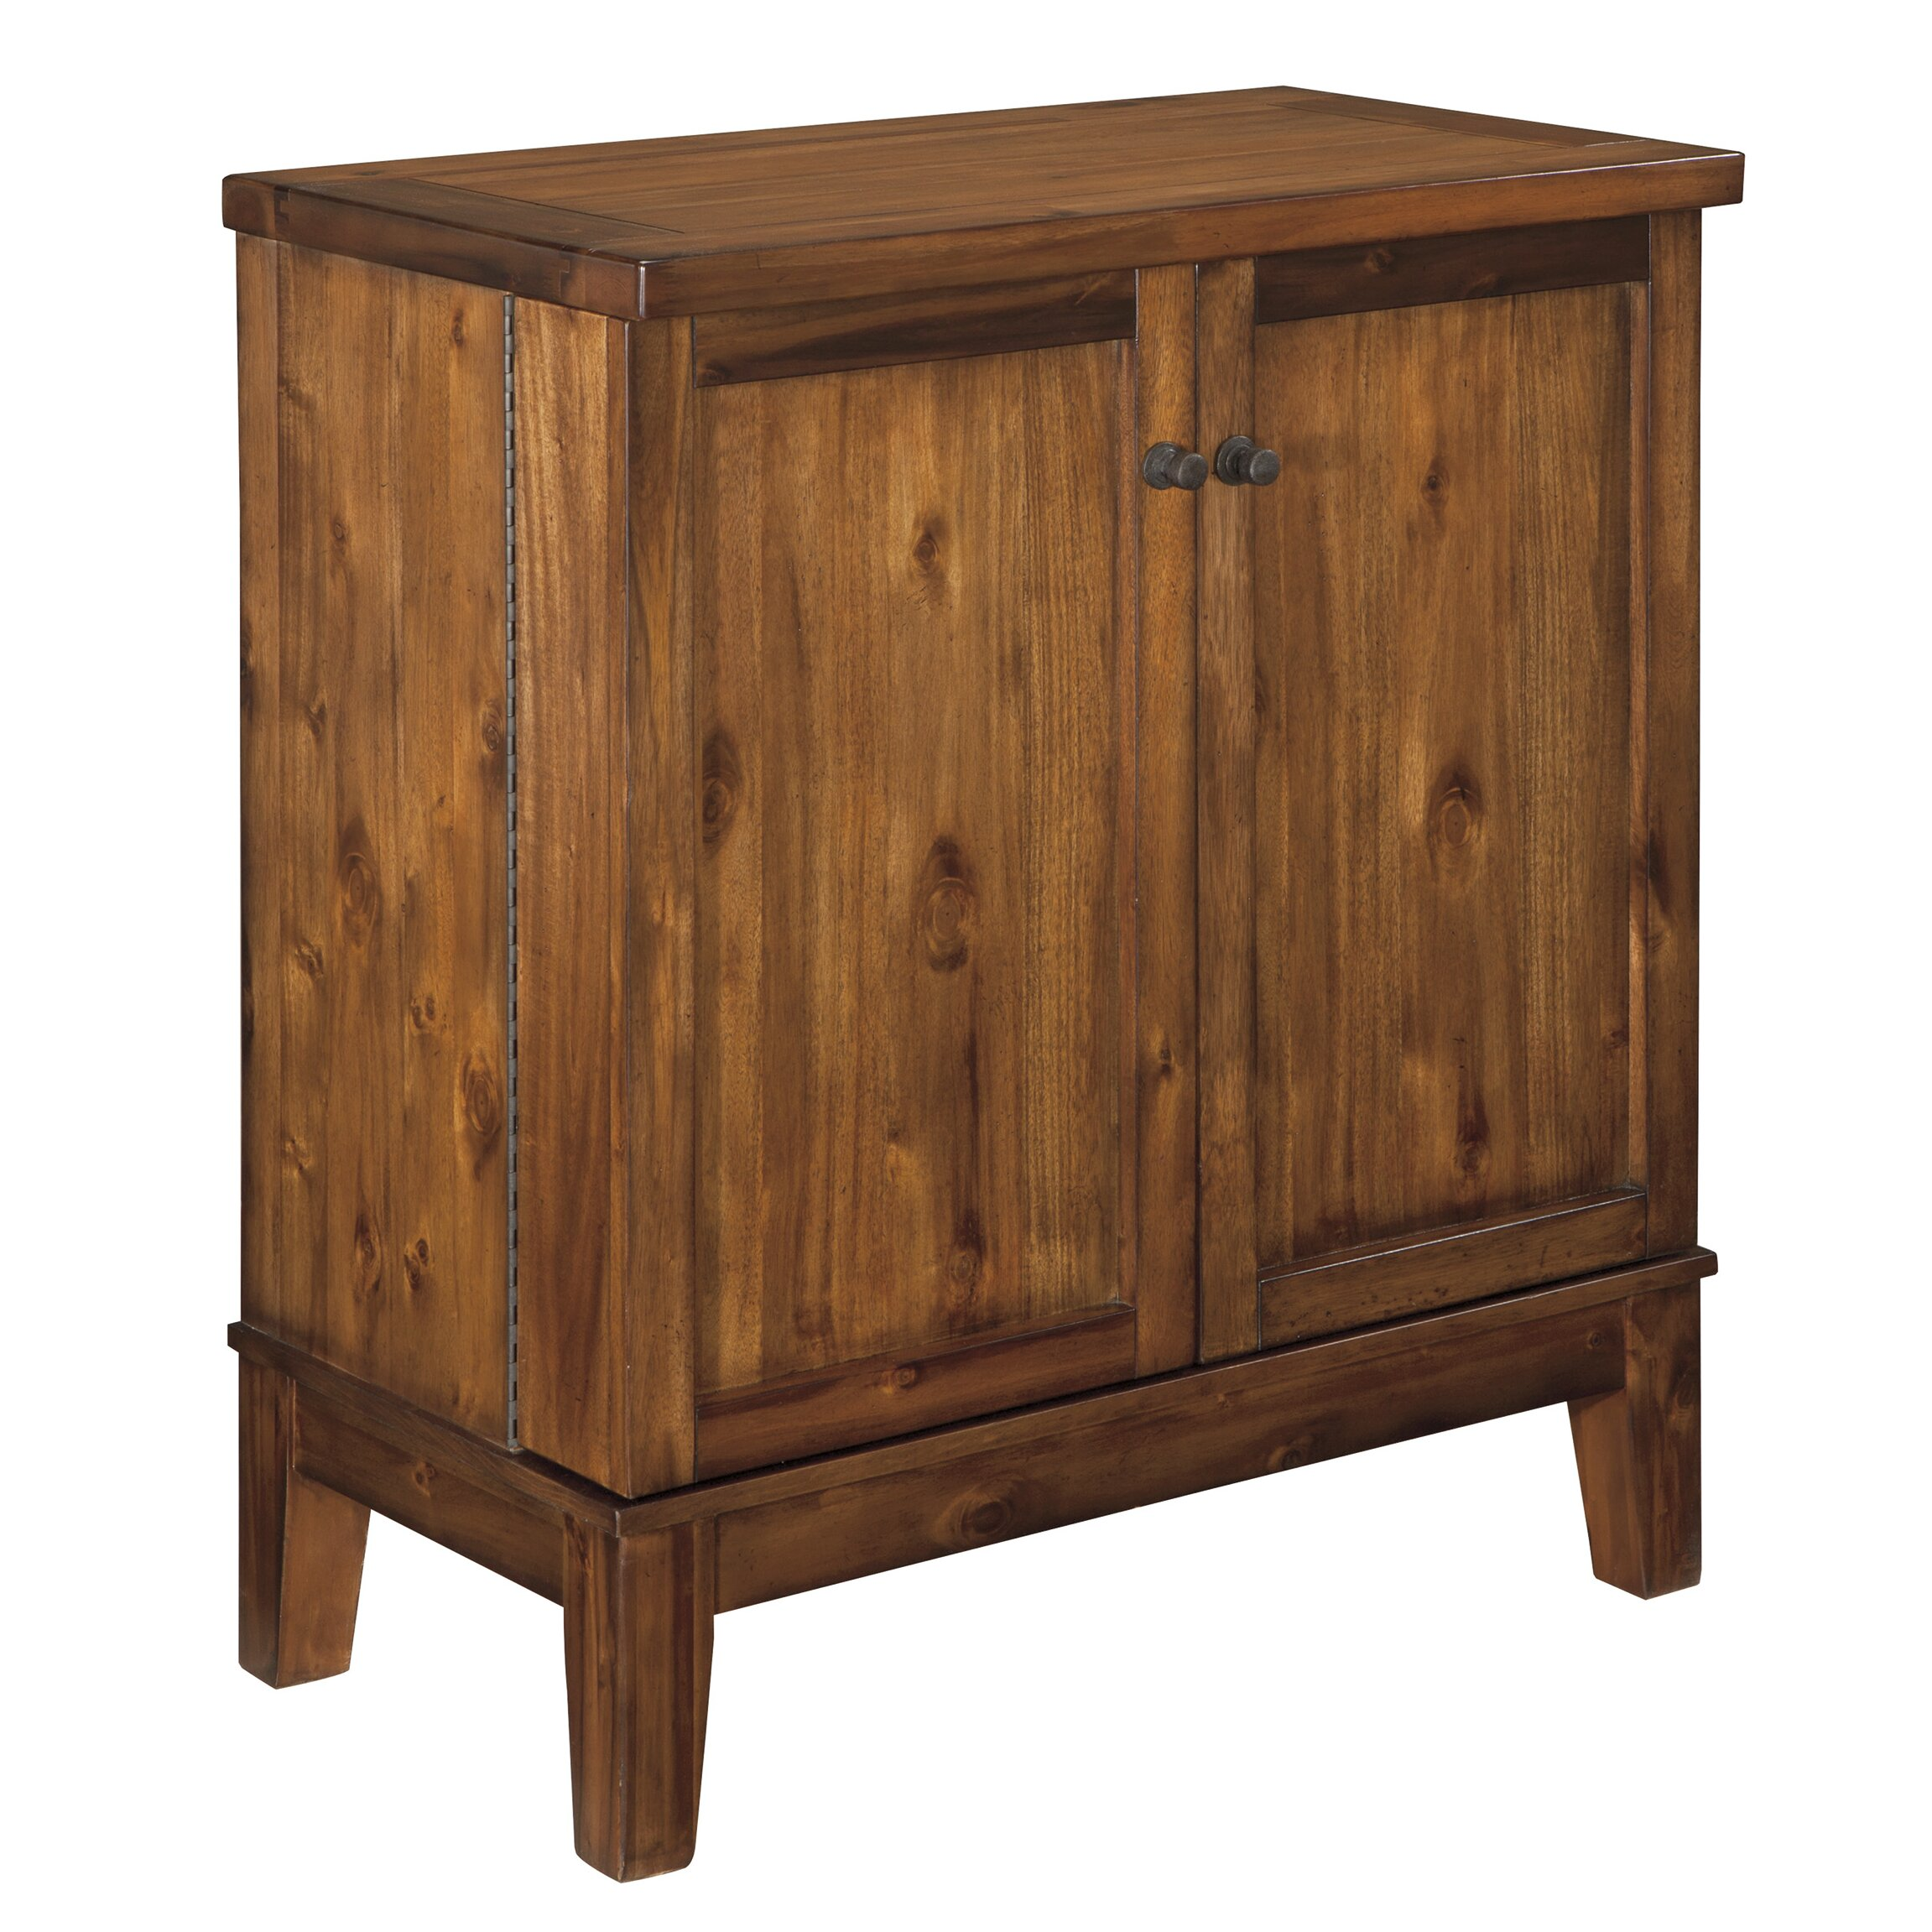 Signature design by ashley shallibay dining room sideboard for Dining room sideboard